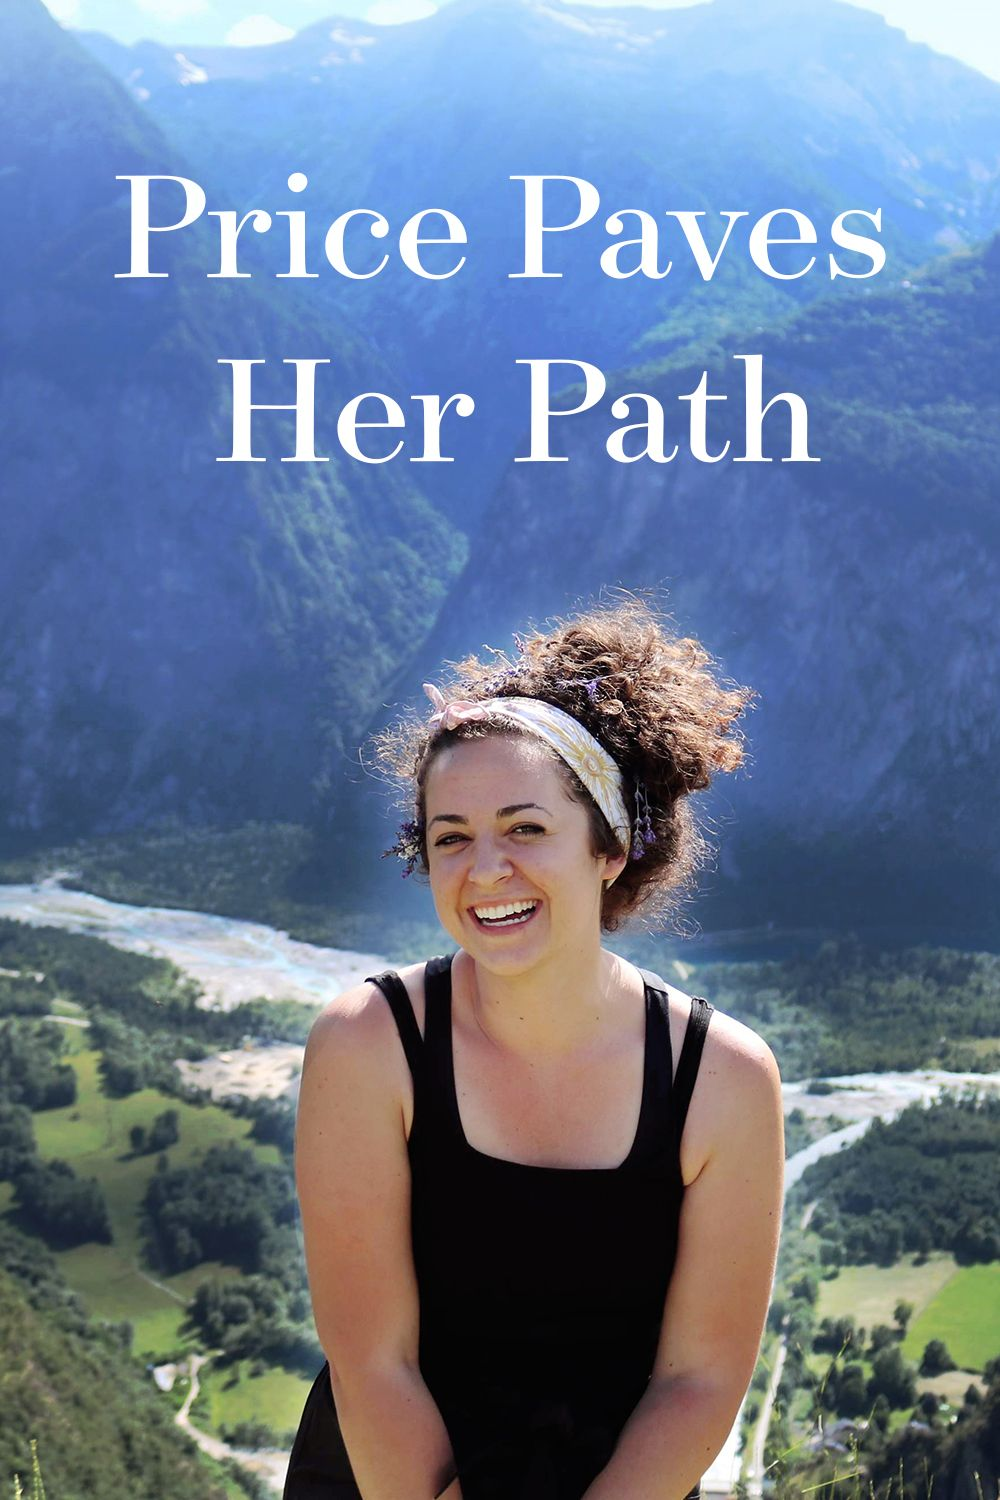 Price Paves Her Path Grace College & Seminary Child